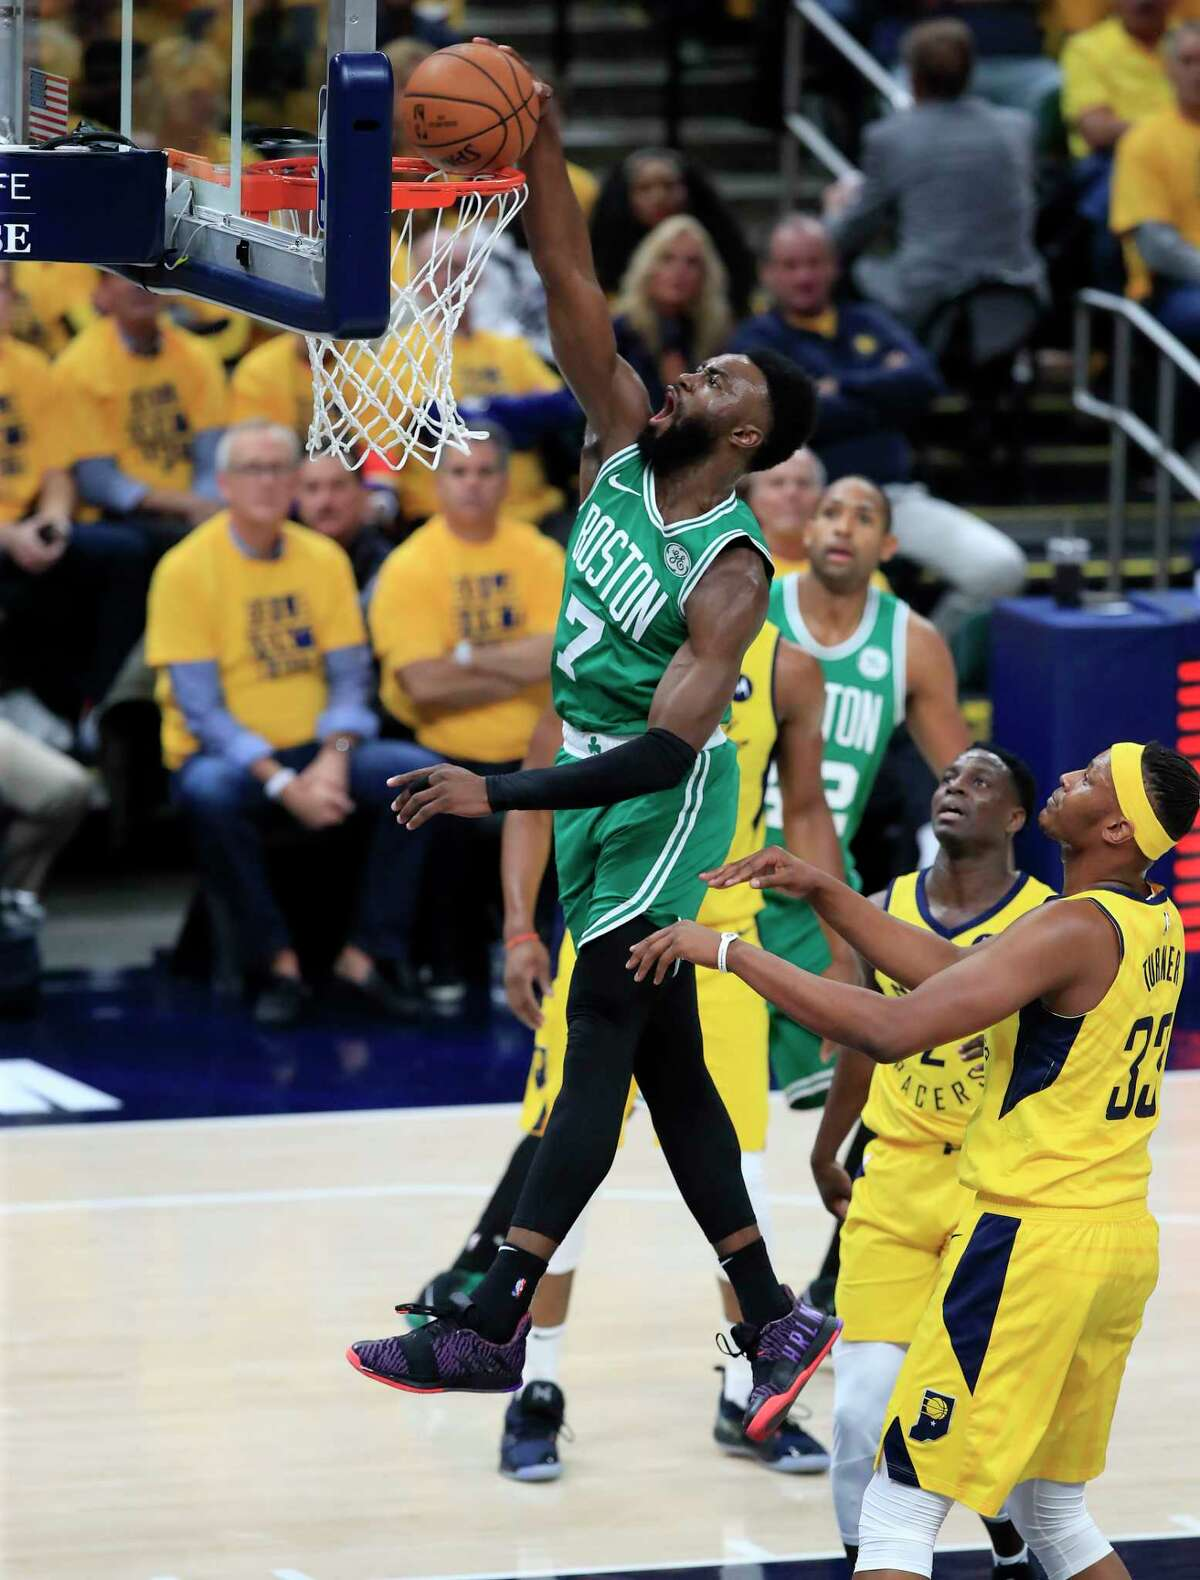 INDIANAPOLIS, INDIANA - APRIL 19: Jaylen Brown #7 of the Boston Celtics shoots the ball against the Indiana Pacers in game three of the first round of the 2019 NBA Playoffs at Bankers Life Fieldhouse on April 19, 2019 in Indianapolis, Indiana. NOTE TO USER: User expressly acknowledges and agrees that , by downloading and or using this photograph, User is consenting to the terms and conditions of the Getty Images License Agreement. (Photo by Andy Lyons/Getty Images)